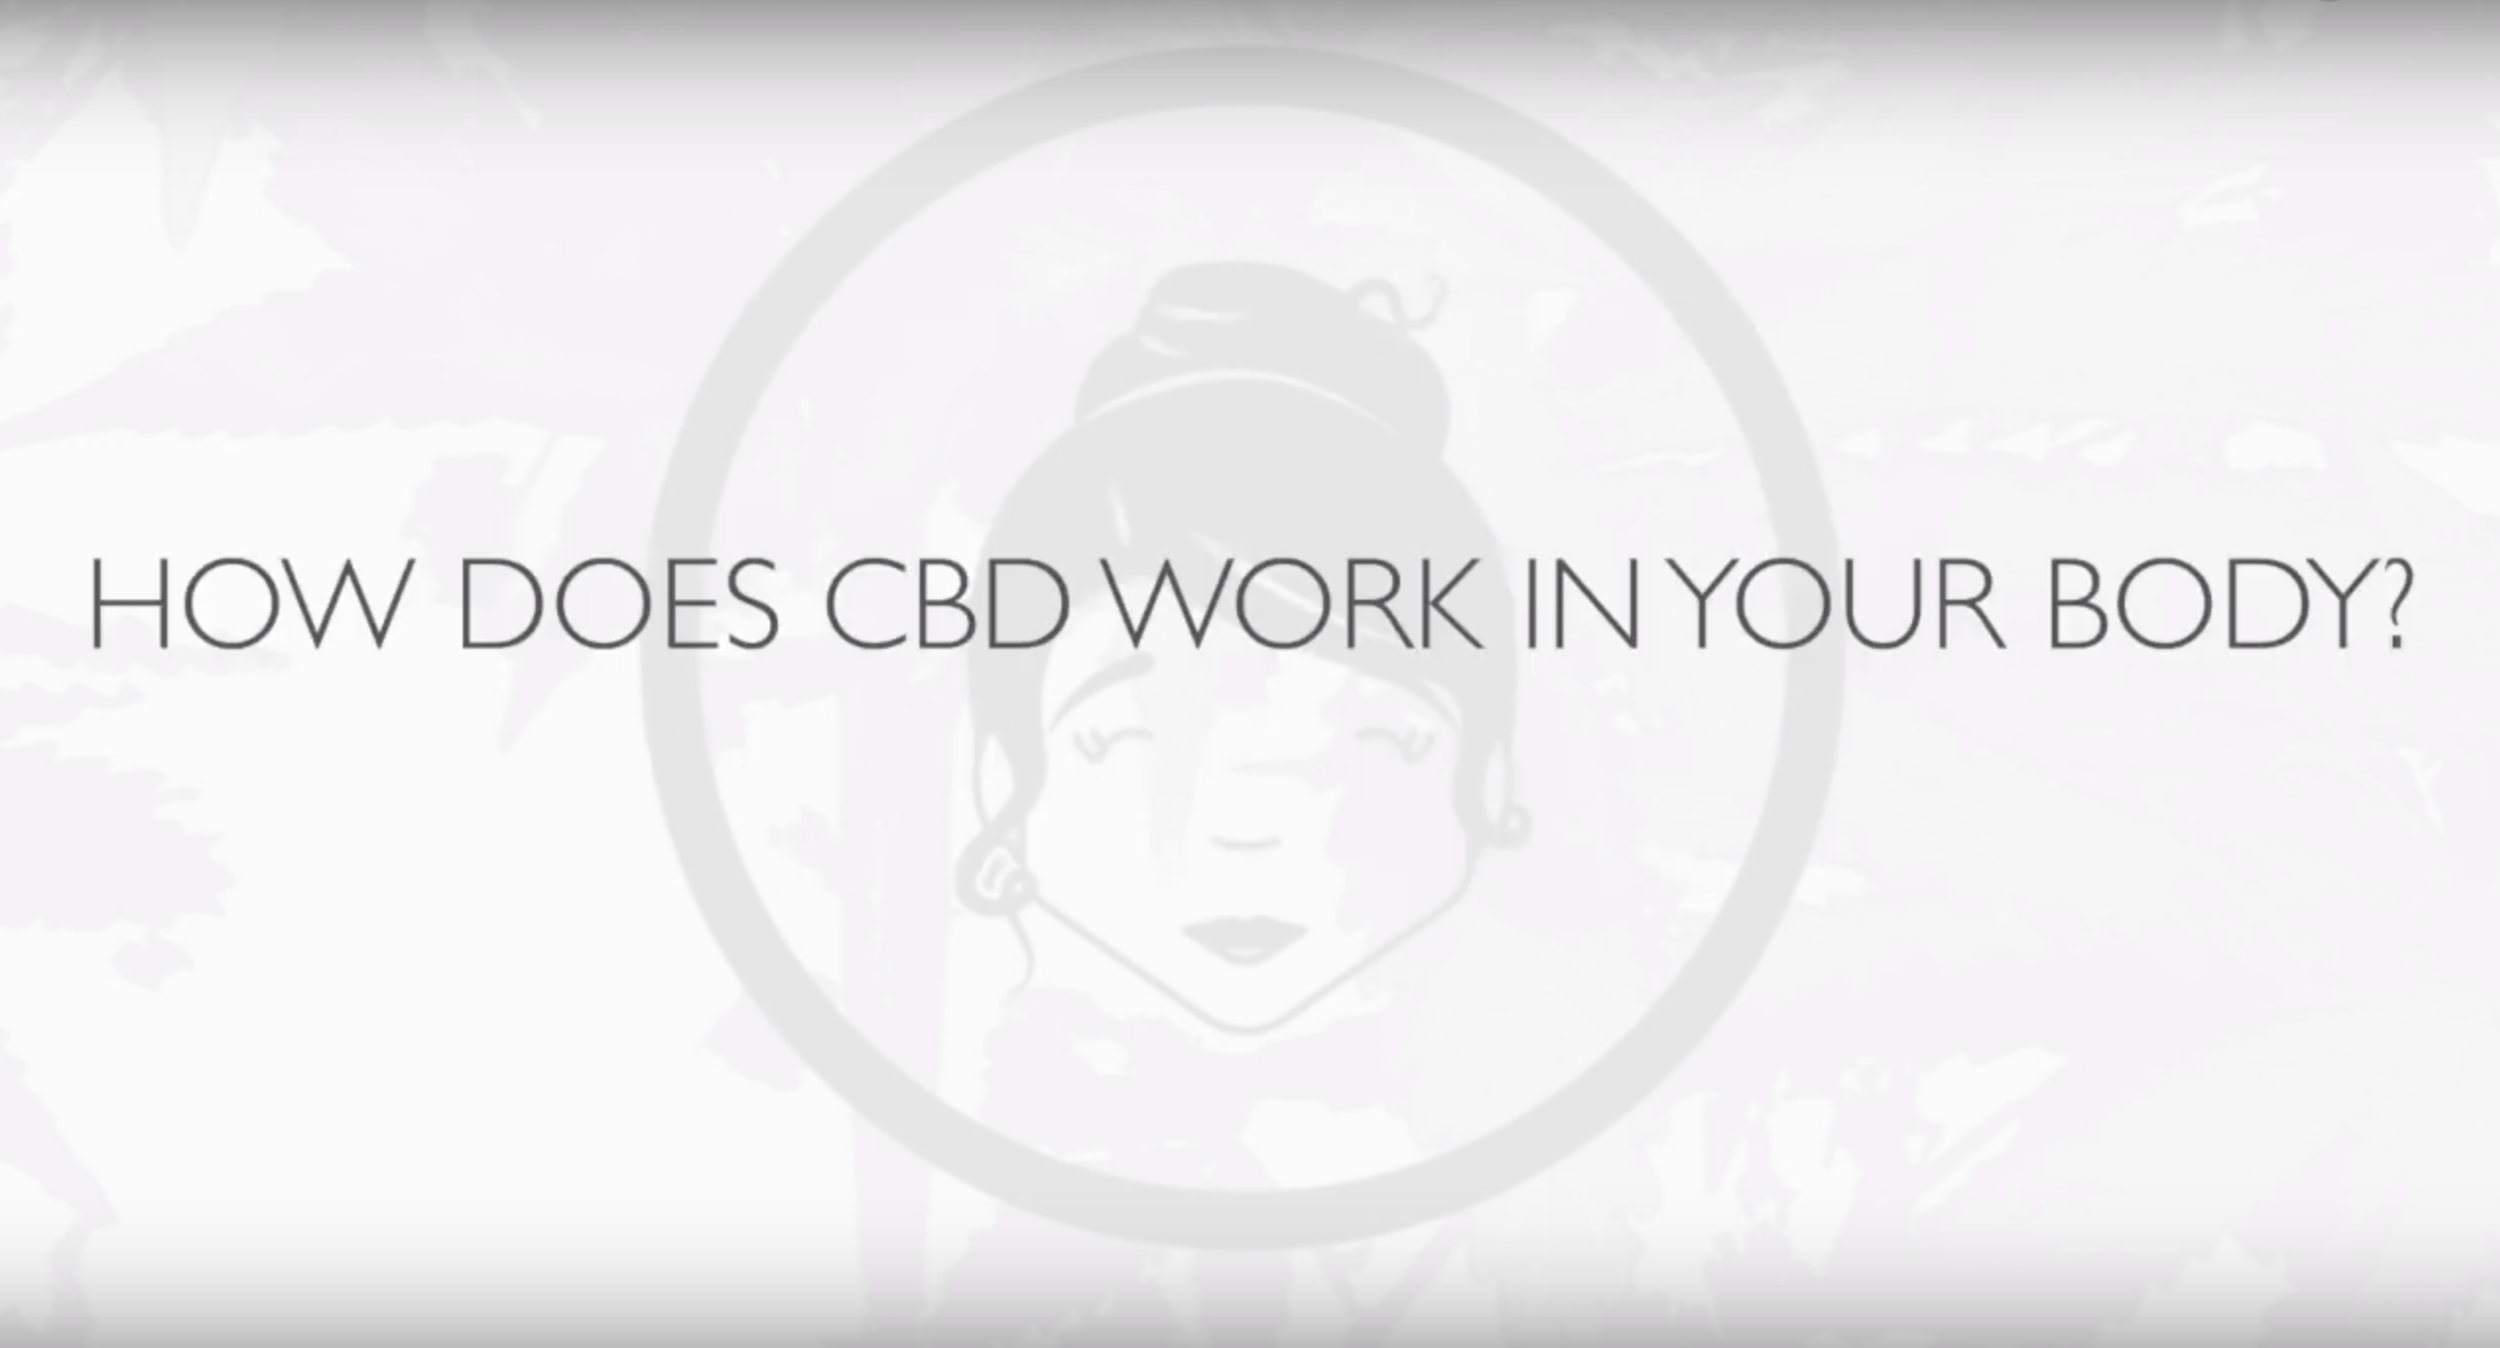 How does CBD work in your body? - Join me for this brief video as I explain how CBD works in your body.This informational video is for those looking for a factual representation of how CBD works in humans & animals (all mammals!).